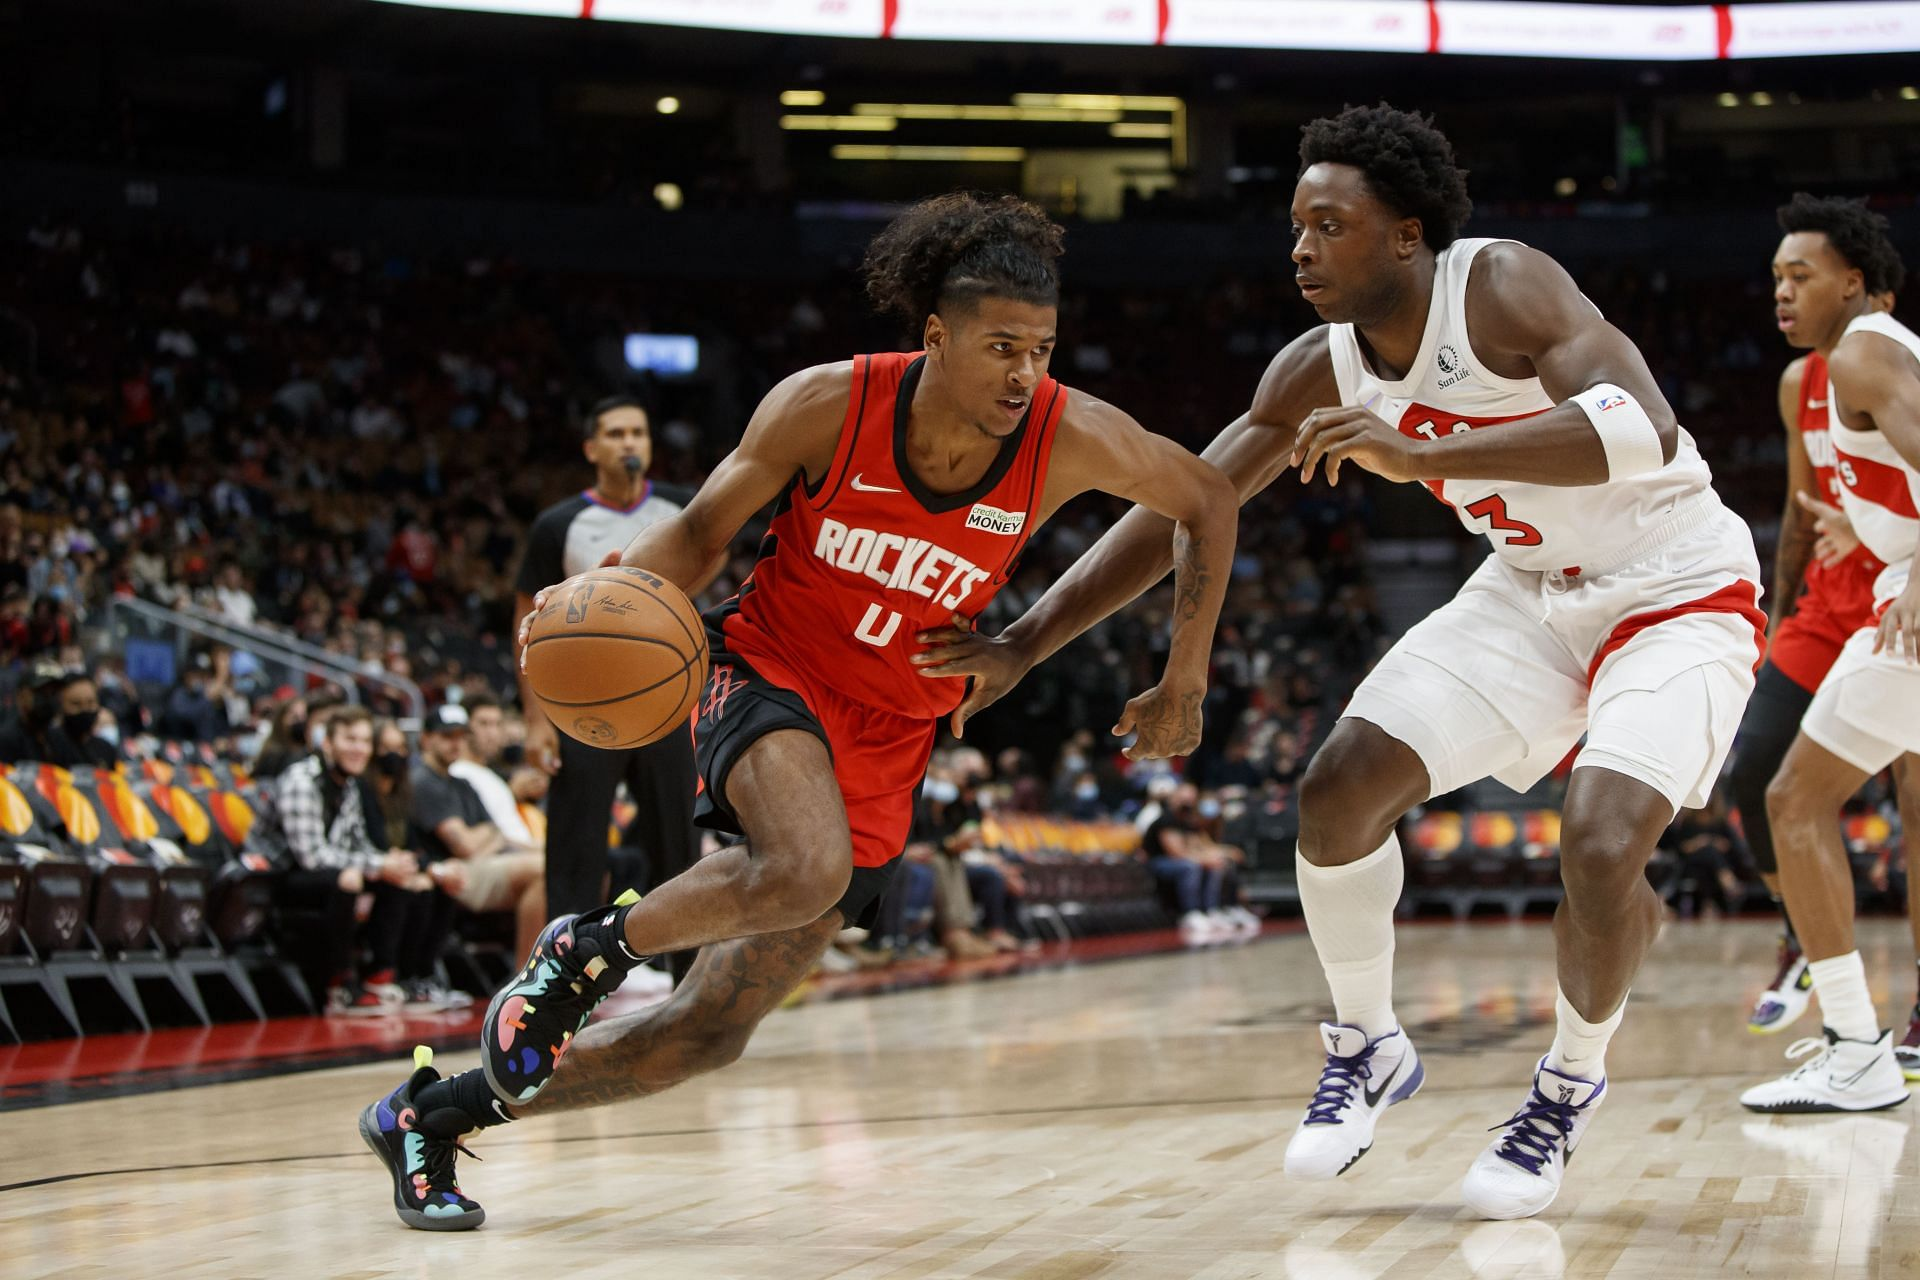 Houston Rocket's guard Jalen Green drives into the paint against OG Anunoby.